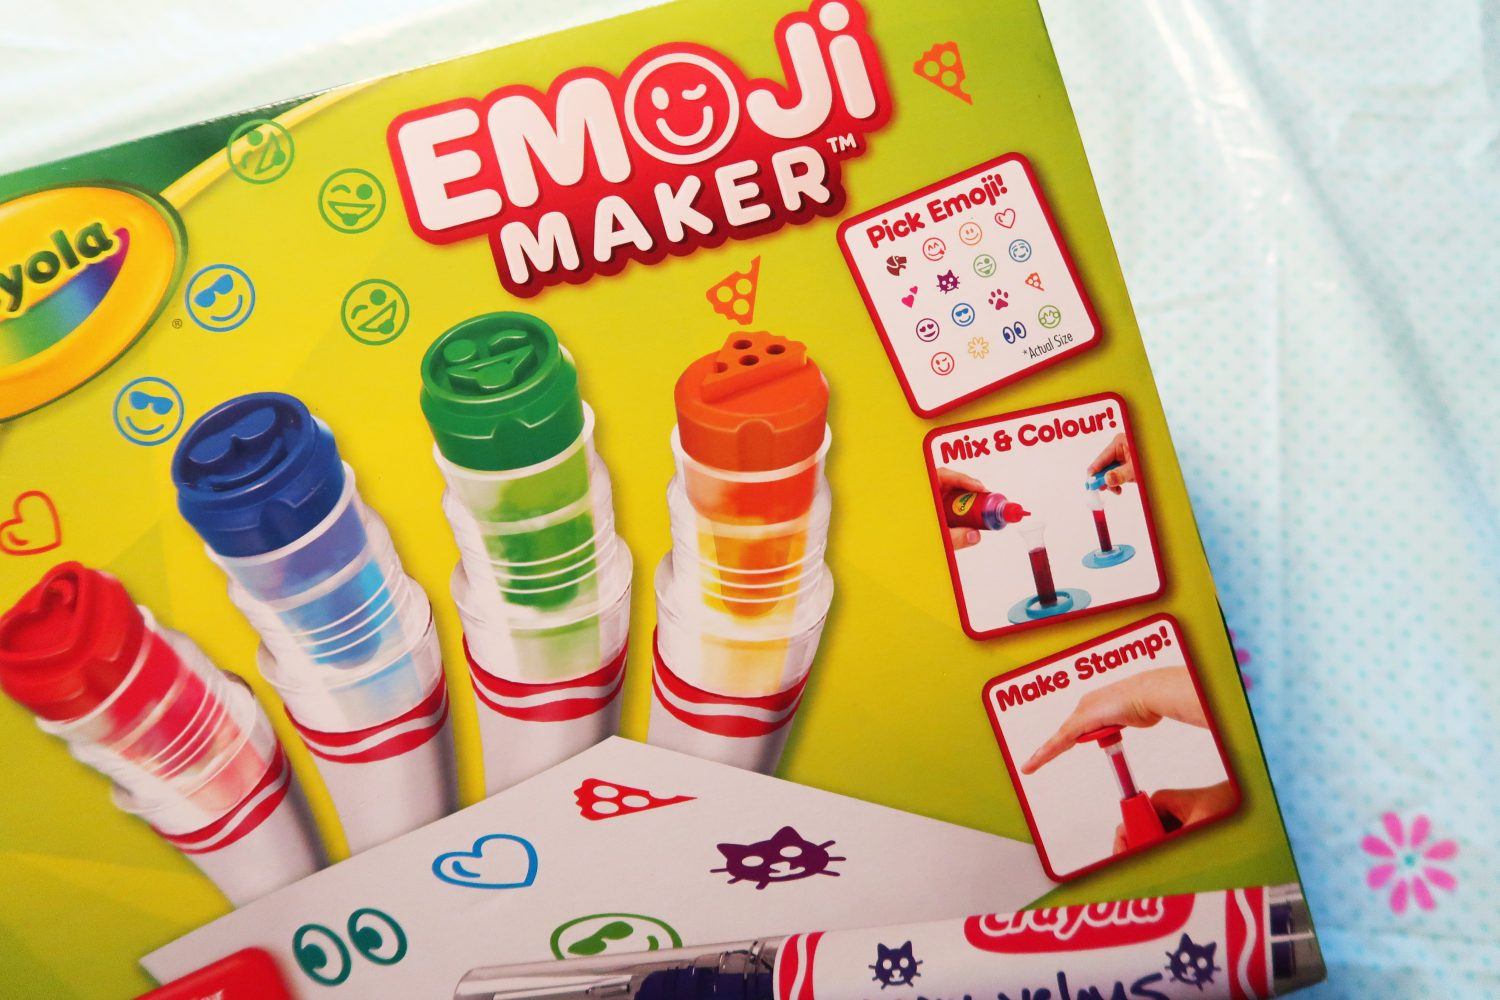 Review: Crayola Emoji Maker